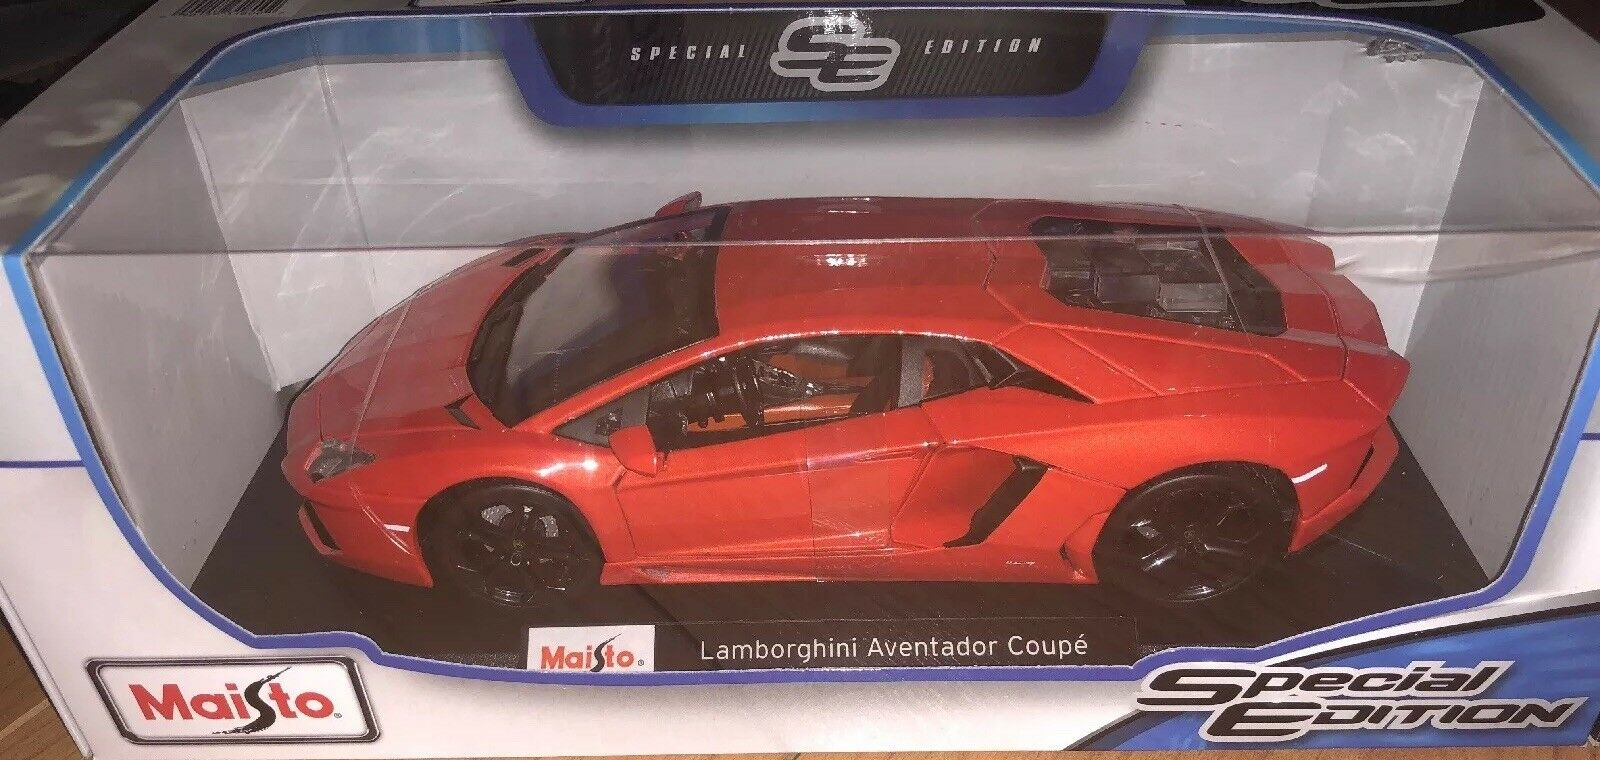 Lamborghini Aventador Coupe orange Maisto 1 18 Special Edition Diecast Model Car